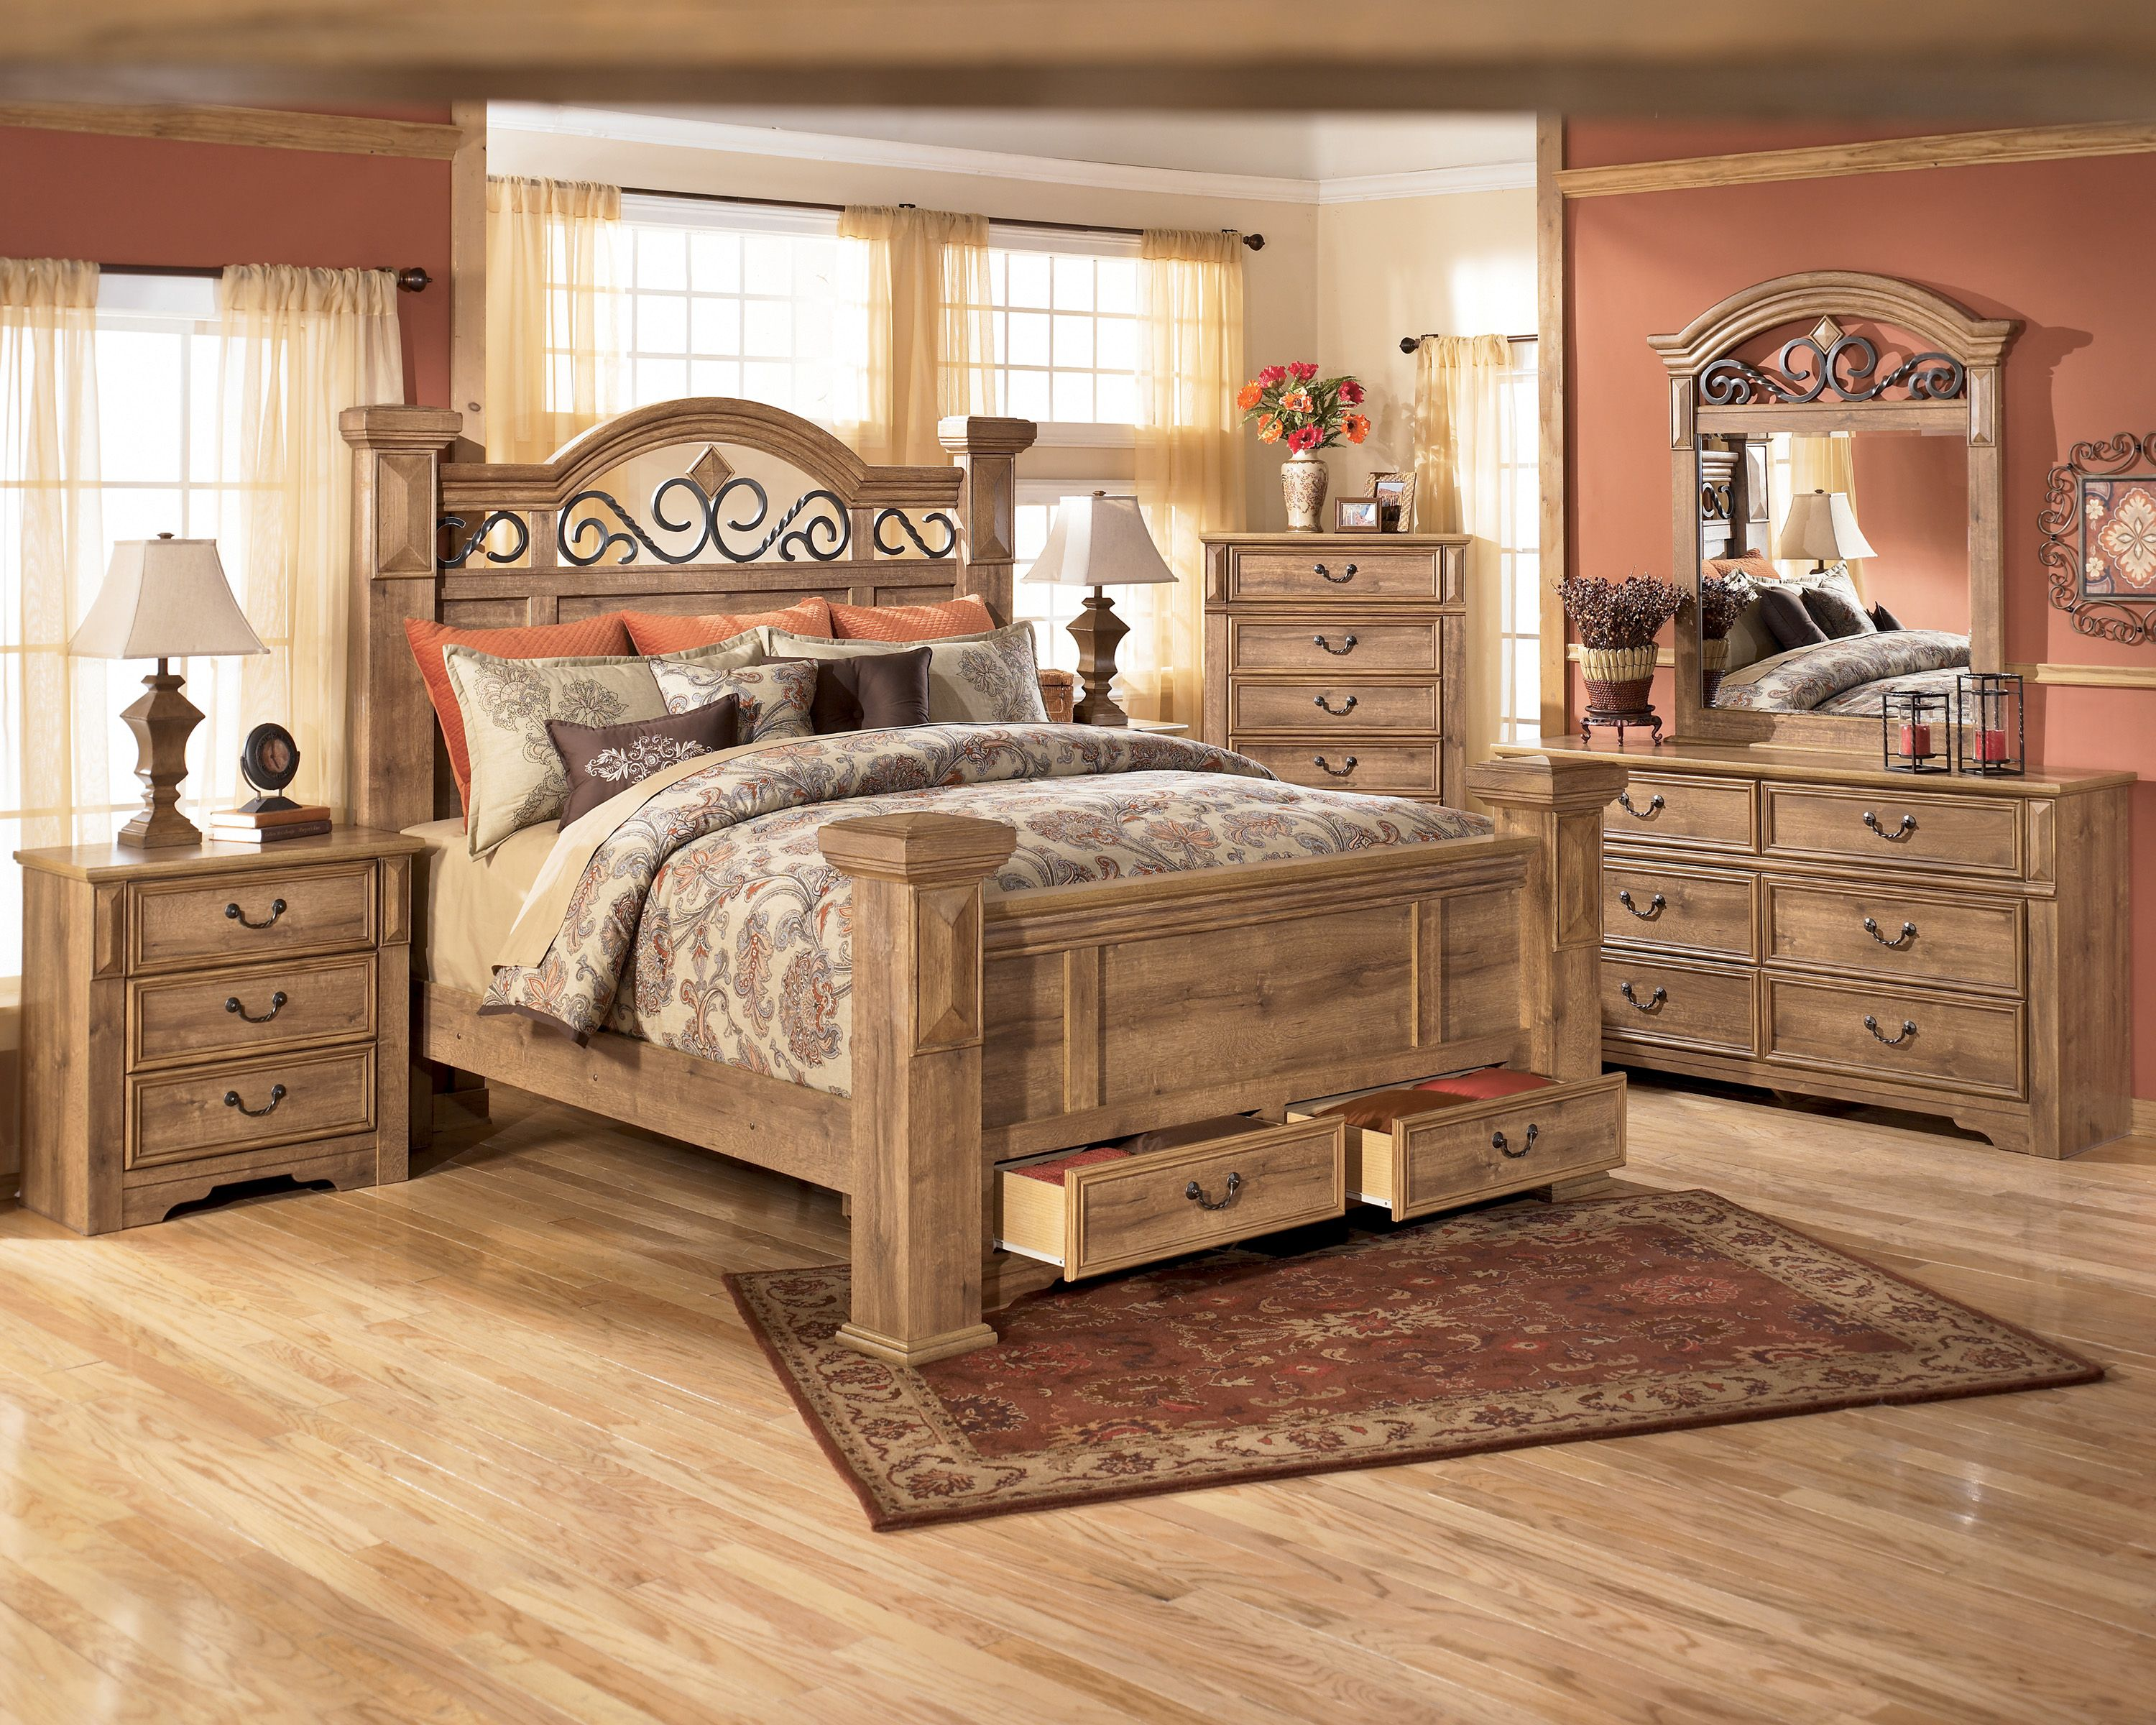 Best King Size Bed Set Rosalinda King Size Bedroom Sets 400 x 300